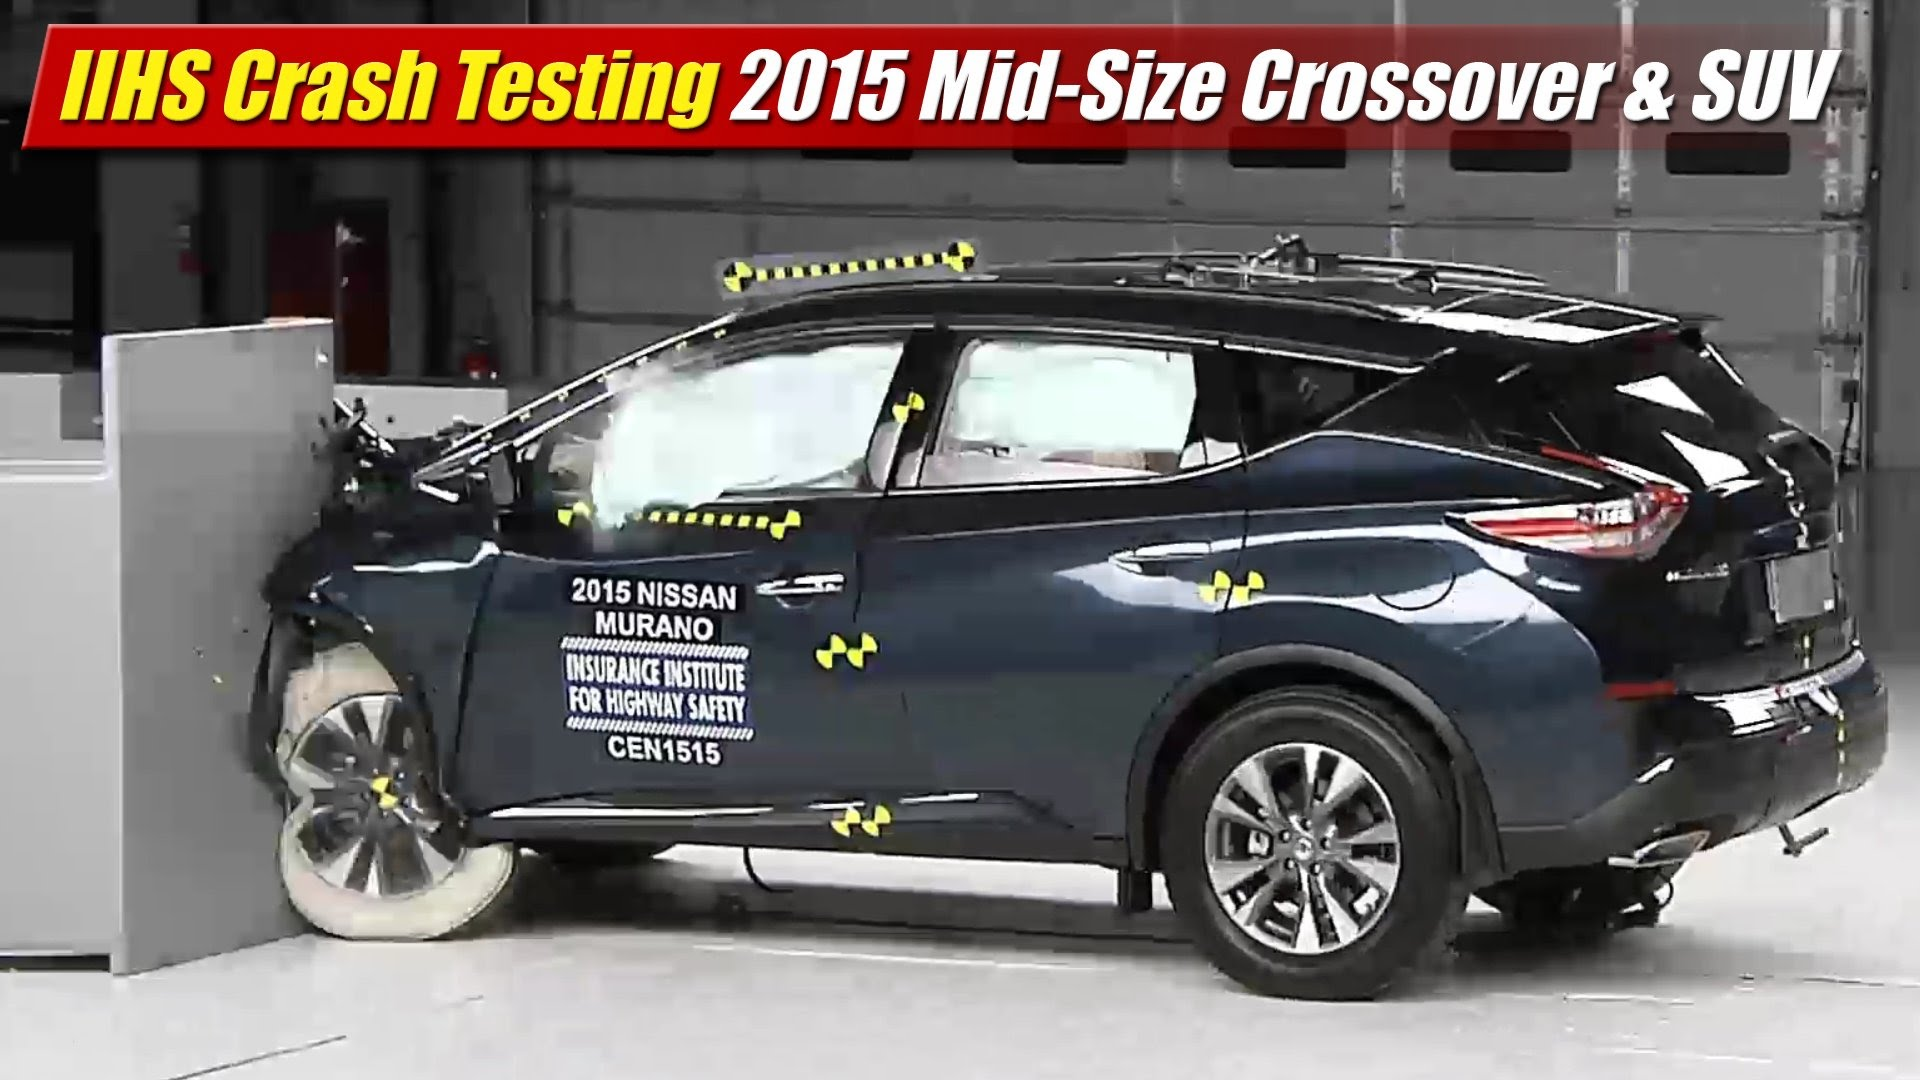 IIHS Crash Testing: 2015 Mid-Size Crossover & SUV